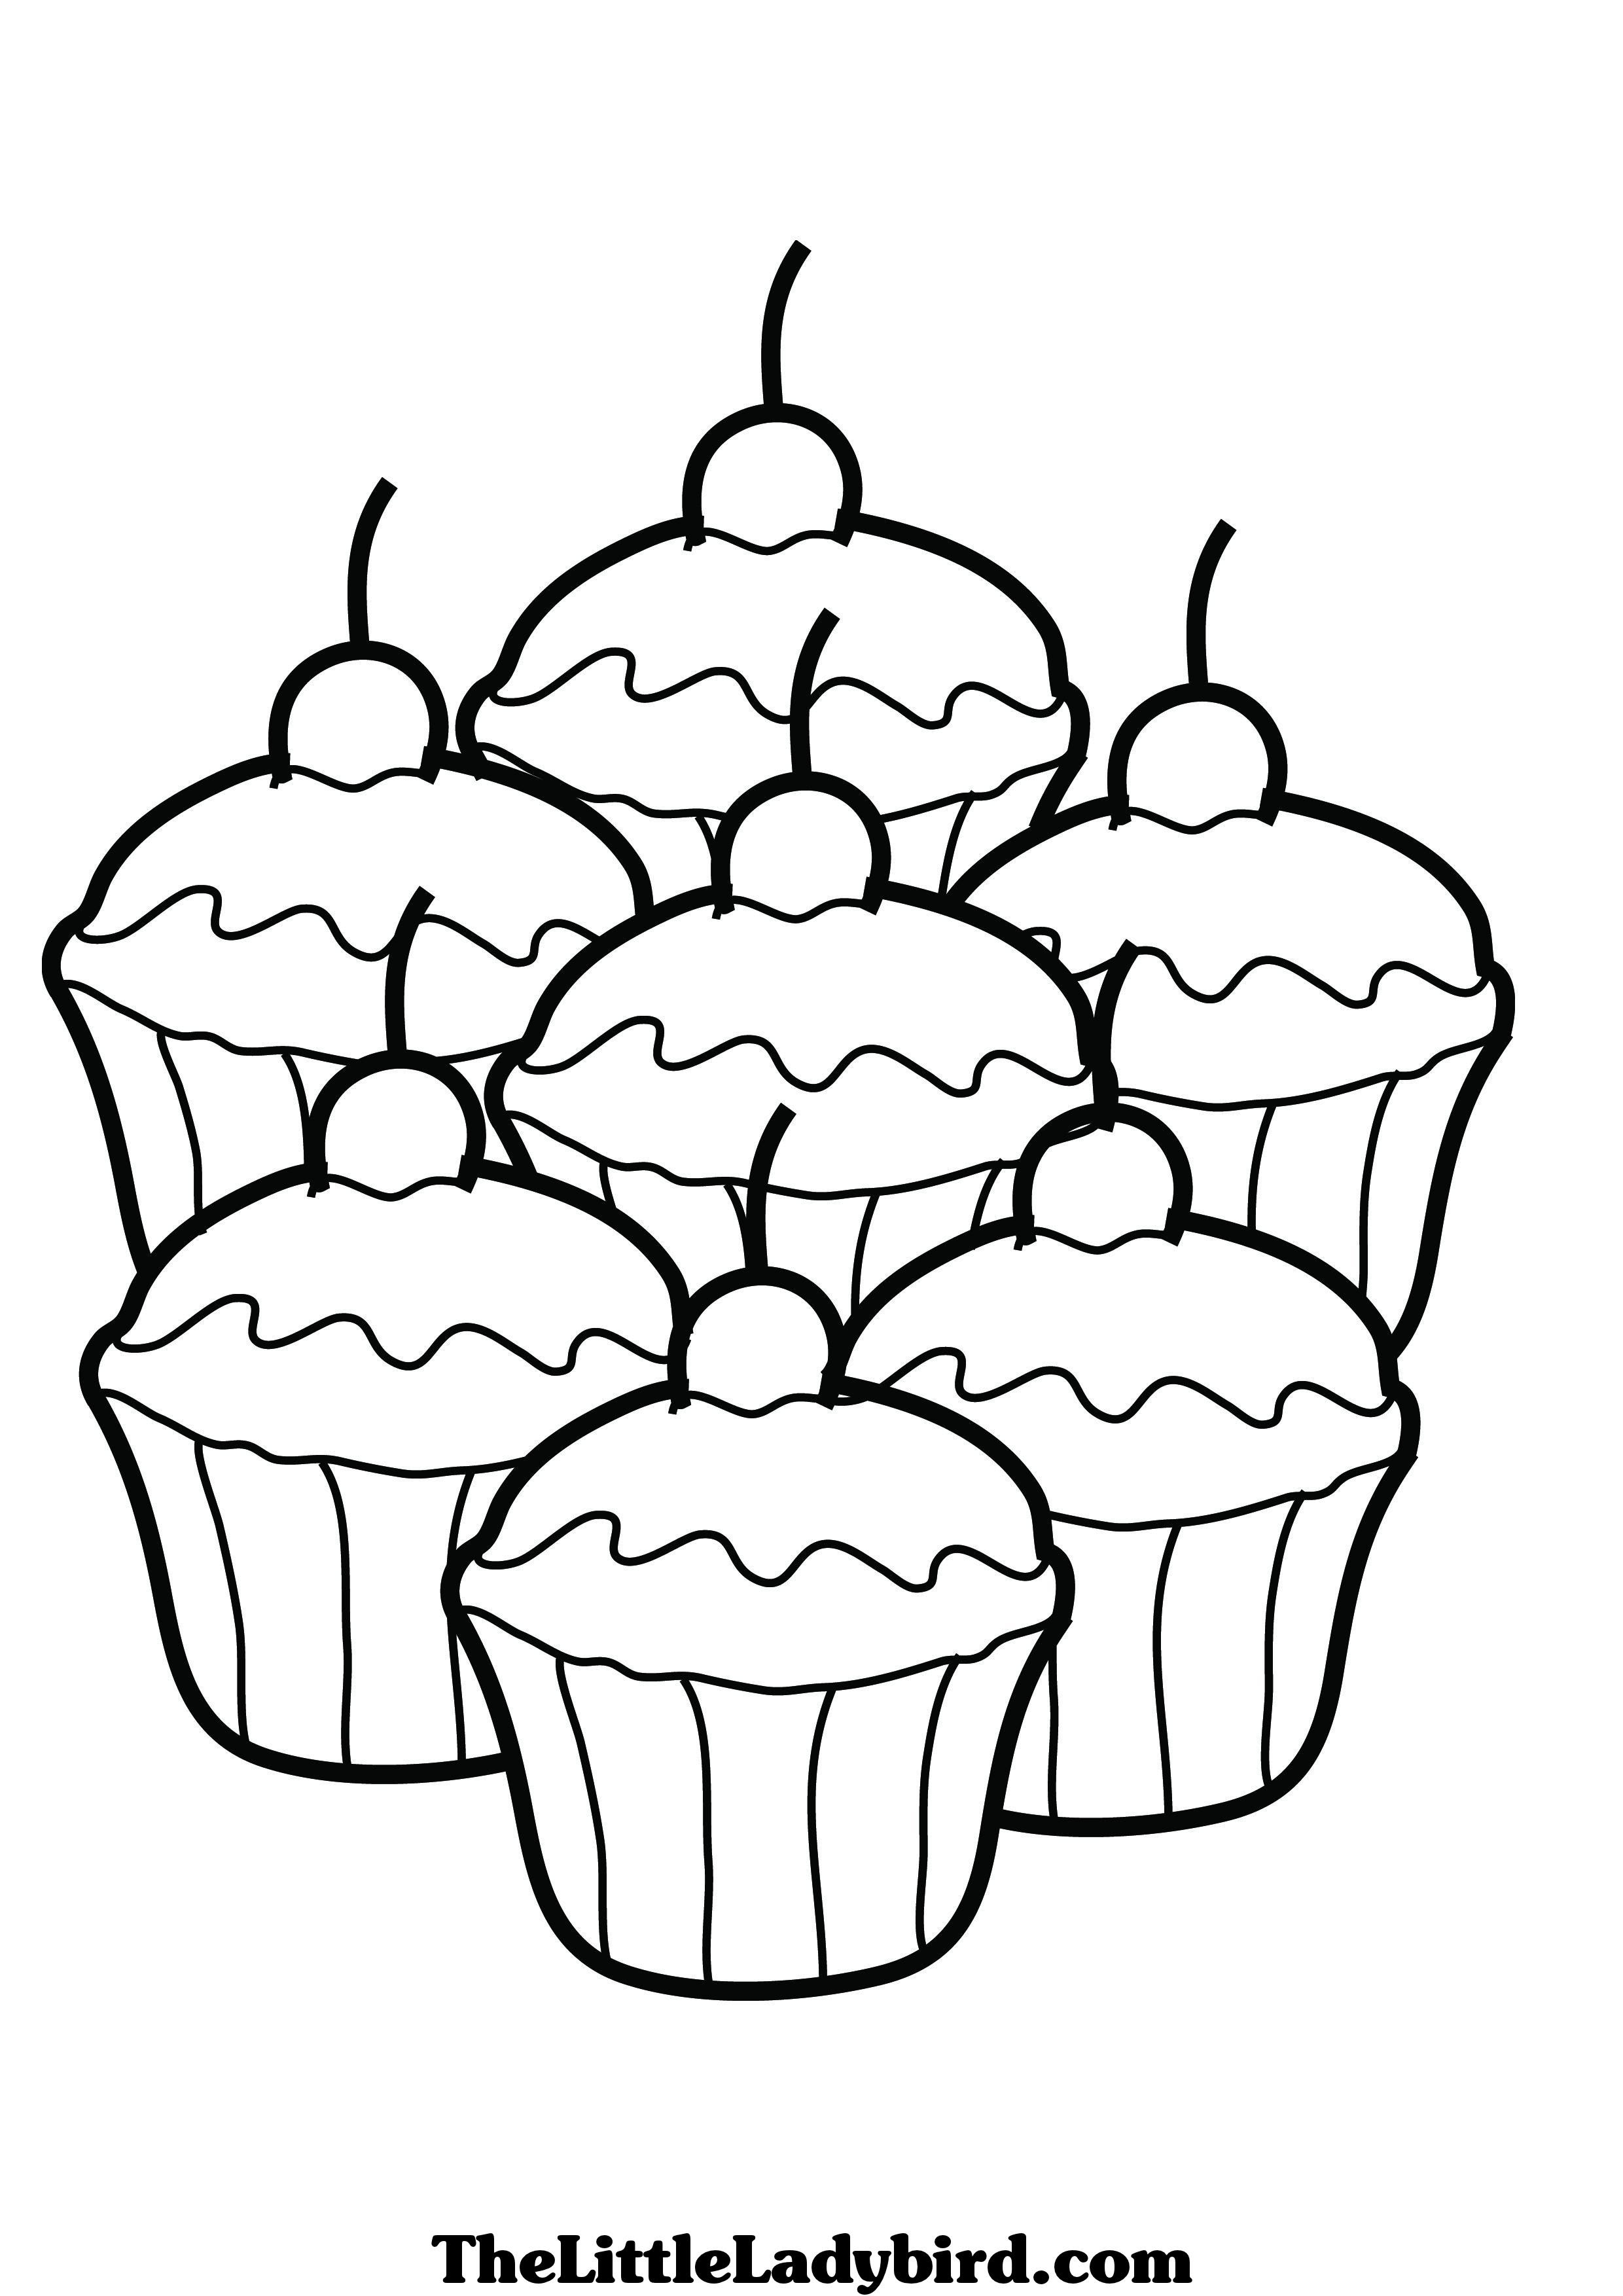 5300 Top Coloring Pages Of Pretty Cupcakes For Free